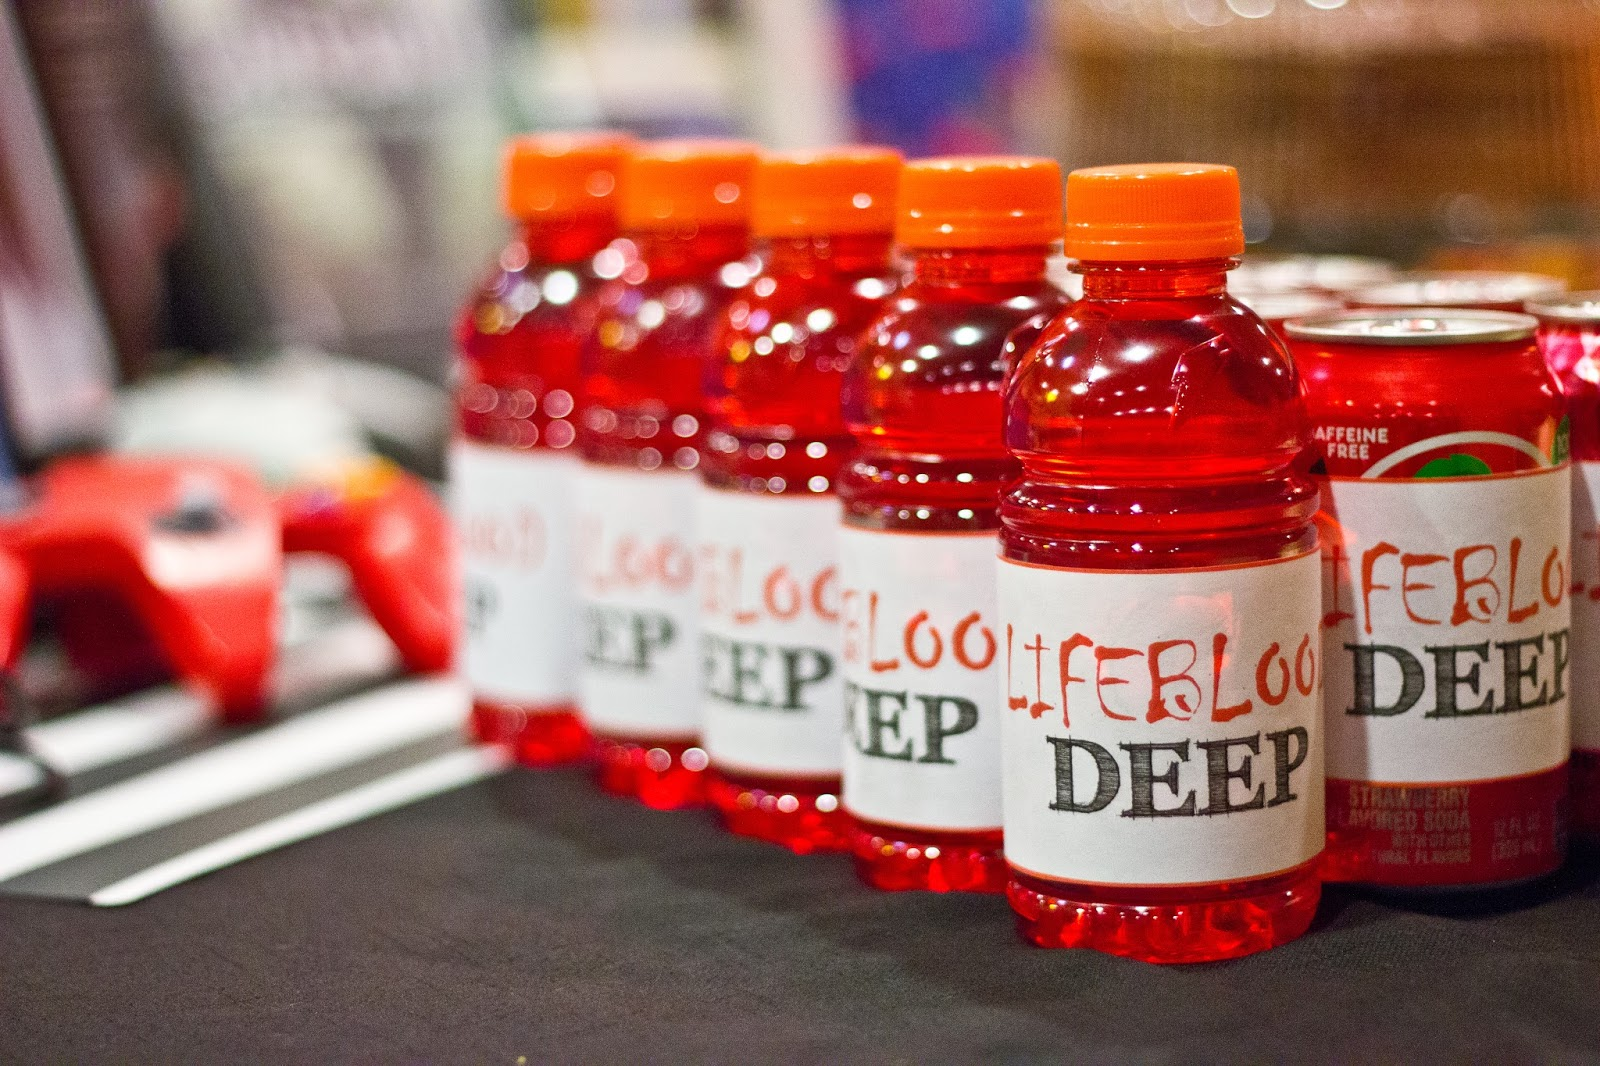 Lifeblood Deep Drinks